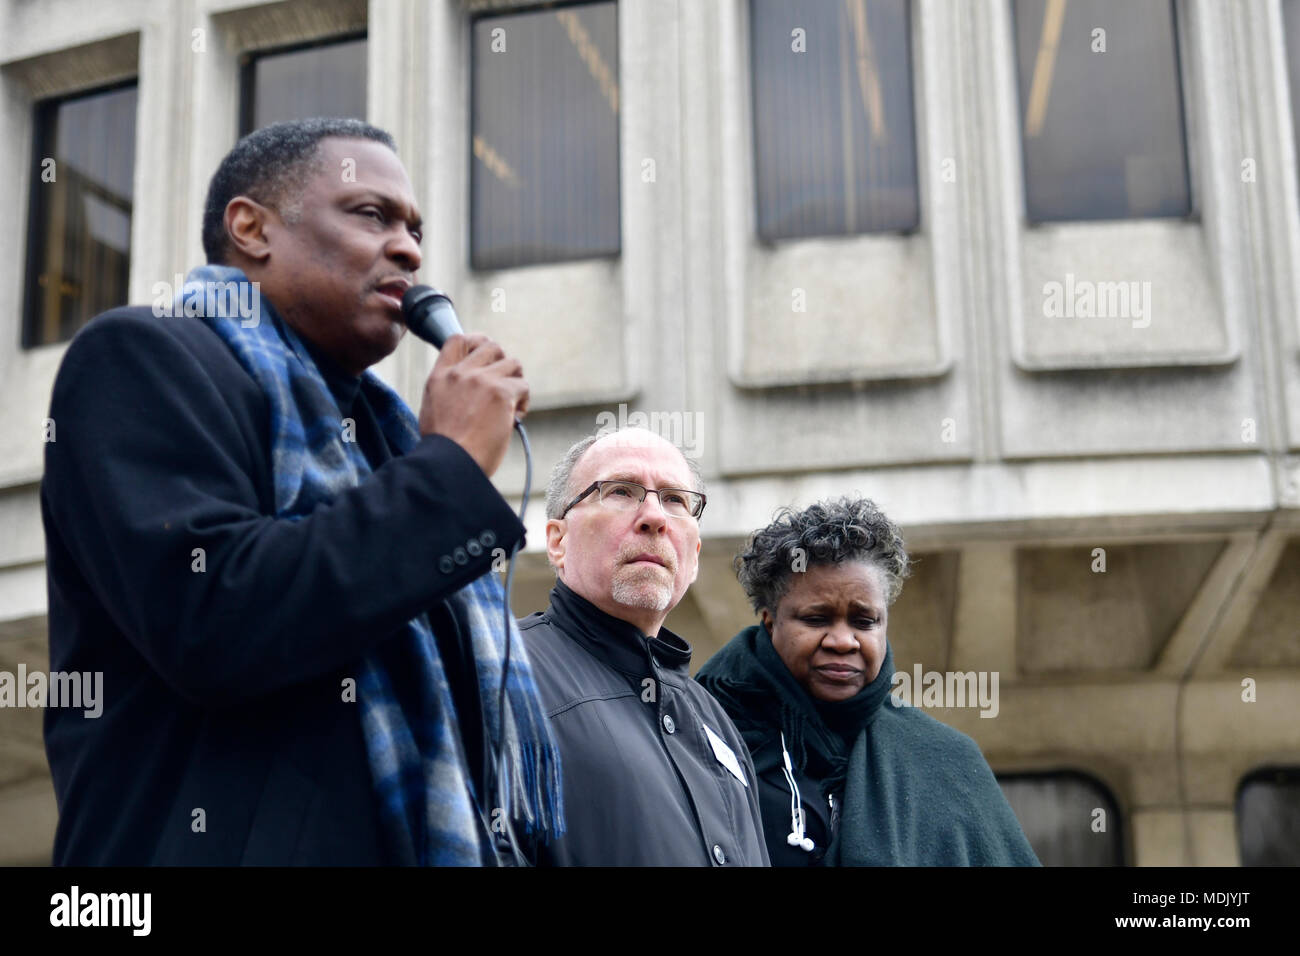 Philadelphia, USA. 19th Apr, 2018. Rev. Greg Holston, Executive Director of Philadelphians Organized to Witness, Empower and Rebuild (POWER), speaks at a Police Accountability rally hosted by POWER outside Police Dept. headquarters in center City Philadelphia, PA, on April19, 2018. Credit: Bastiaan Slabbers/Alamy Live News - Stock Image